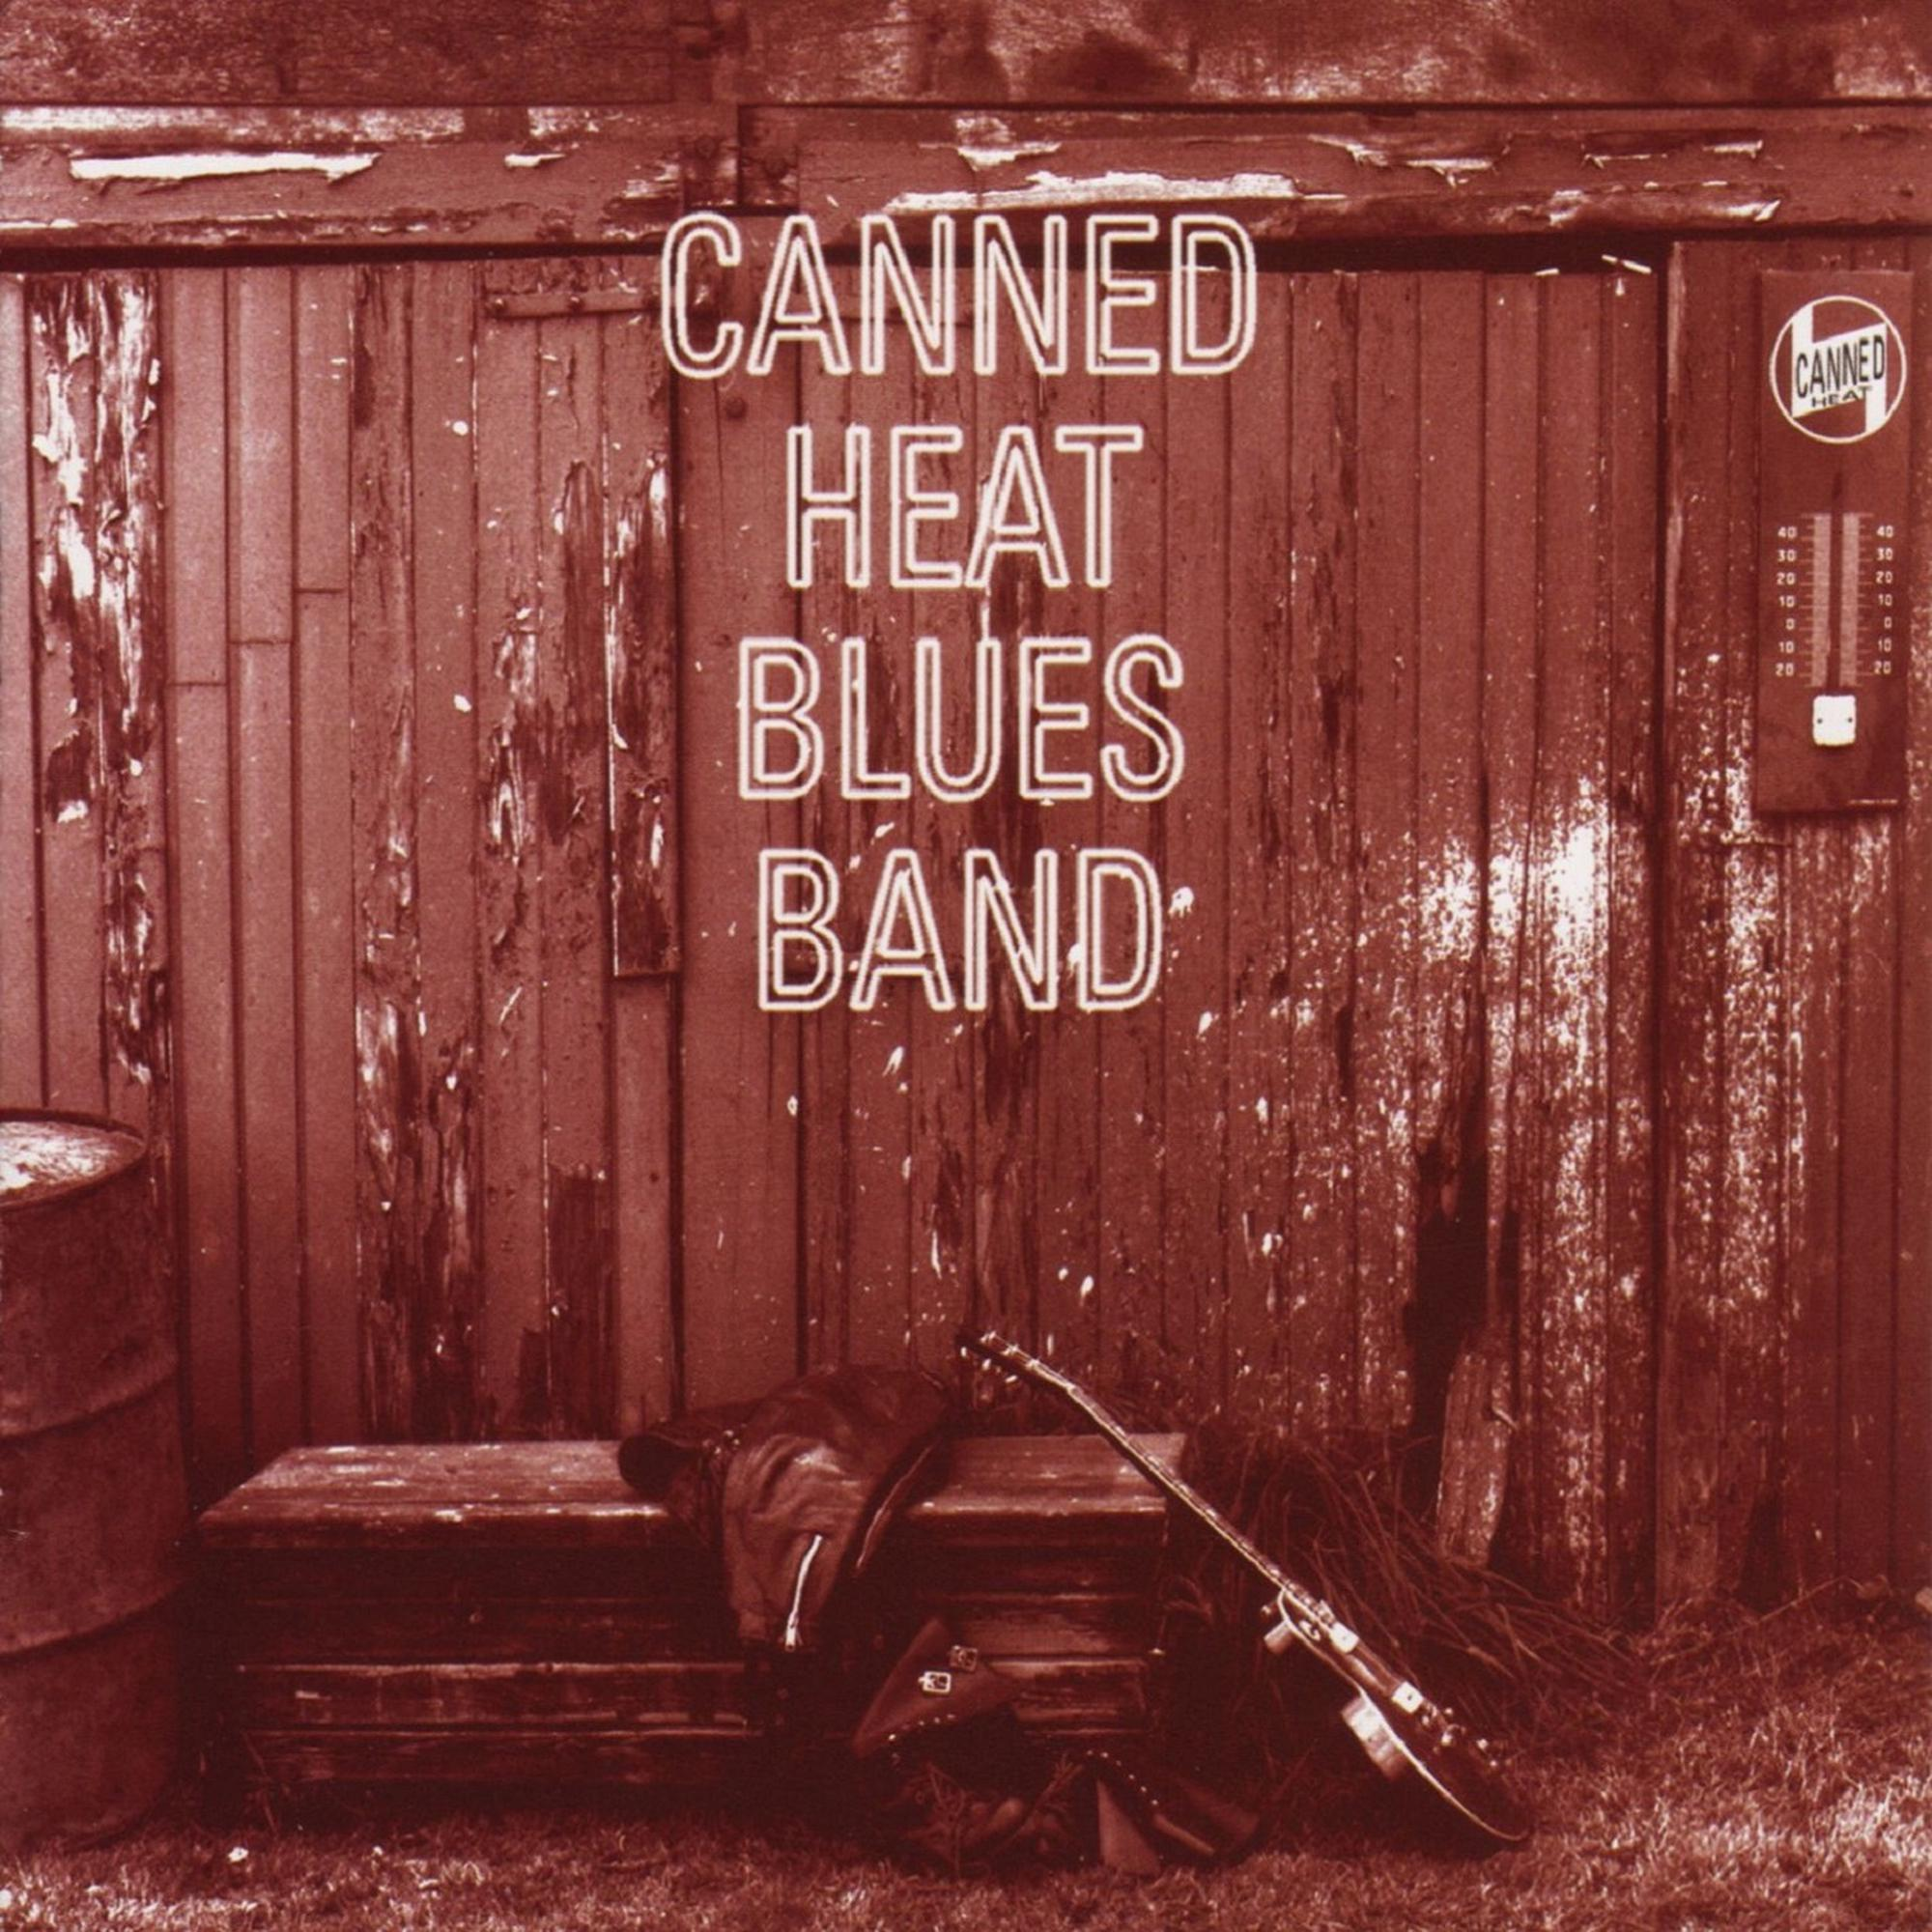 Canned Heat - Canned Heat Blues Band (Trans Gold Vinyl/Limited Anniversary Edition) [RSD Drops 2021]